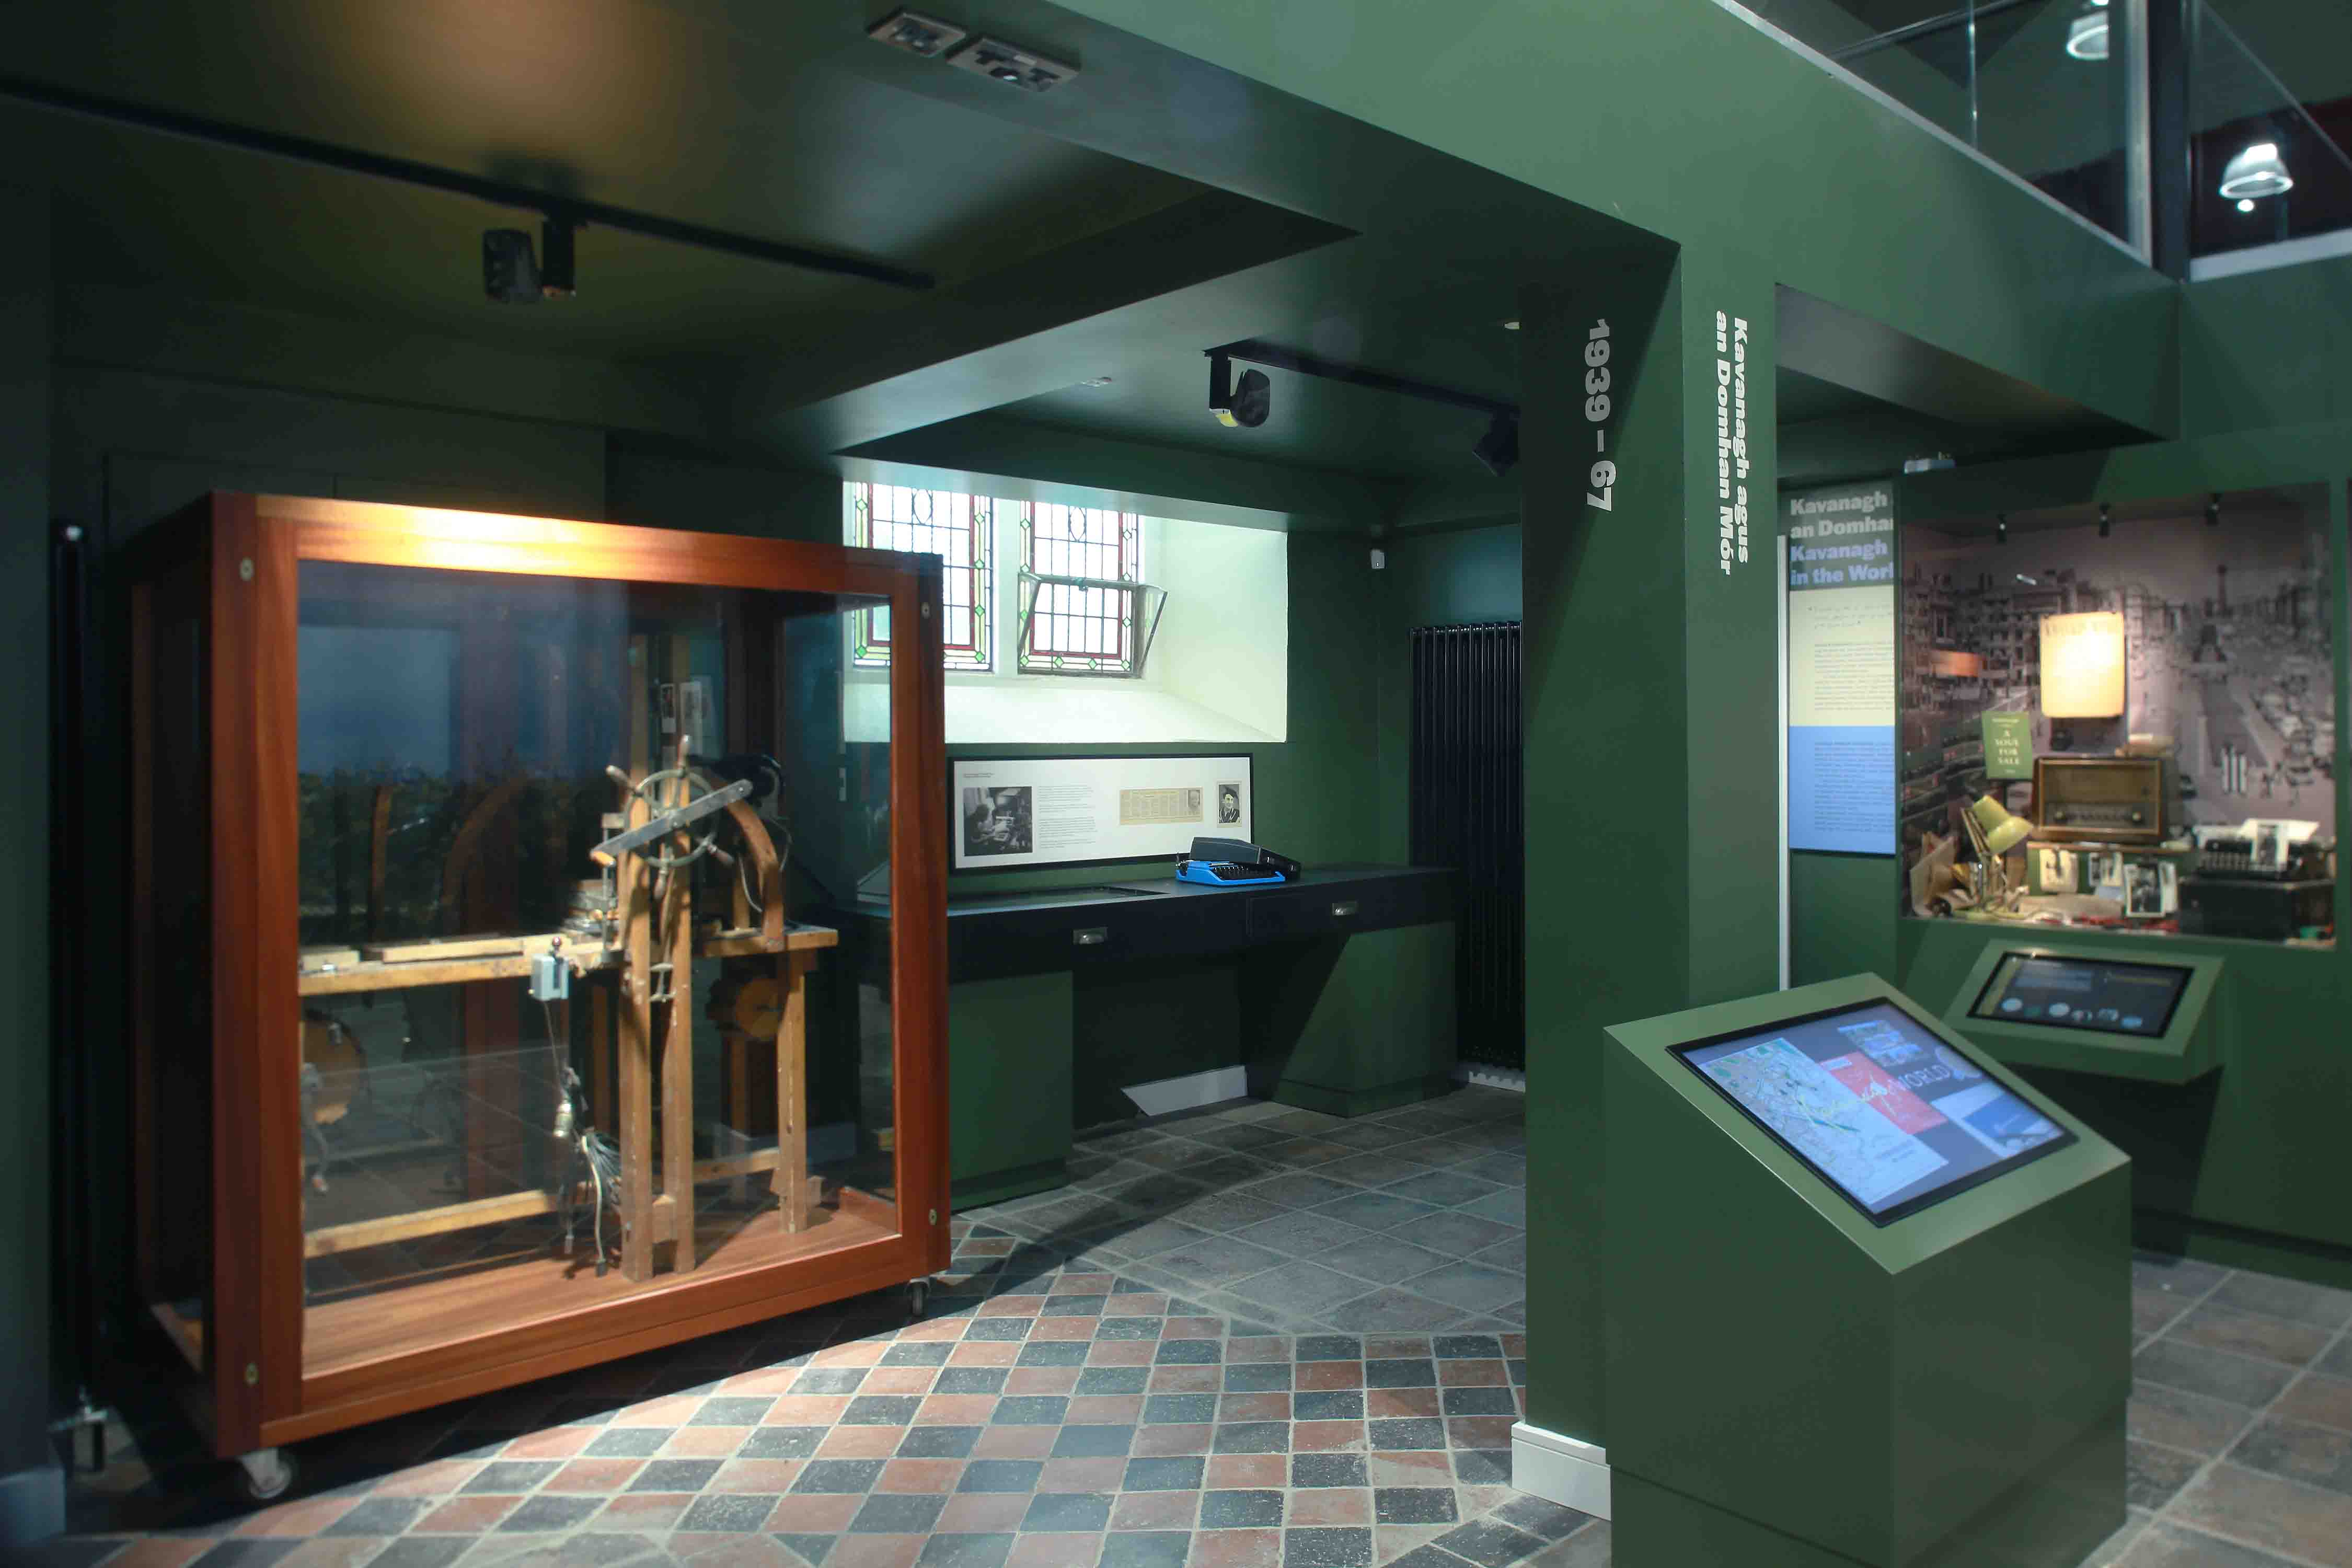 Patrick Kavanagh Exhibition Centre (7)